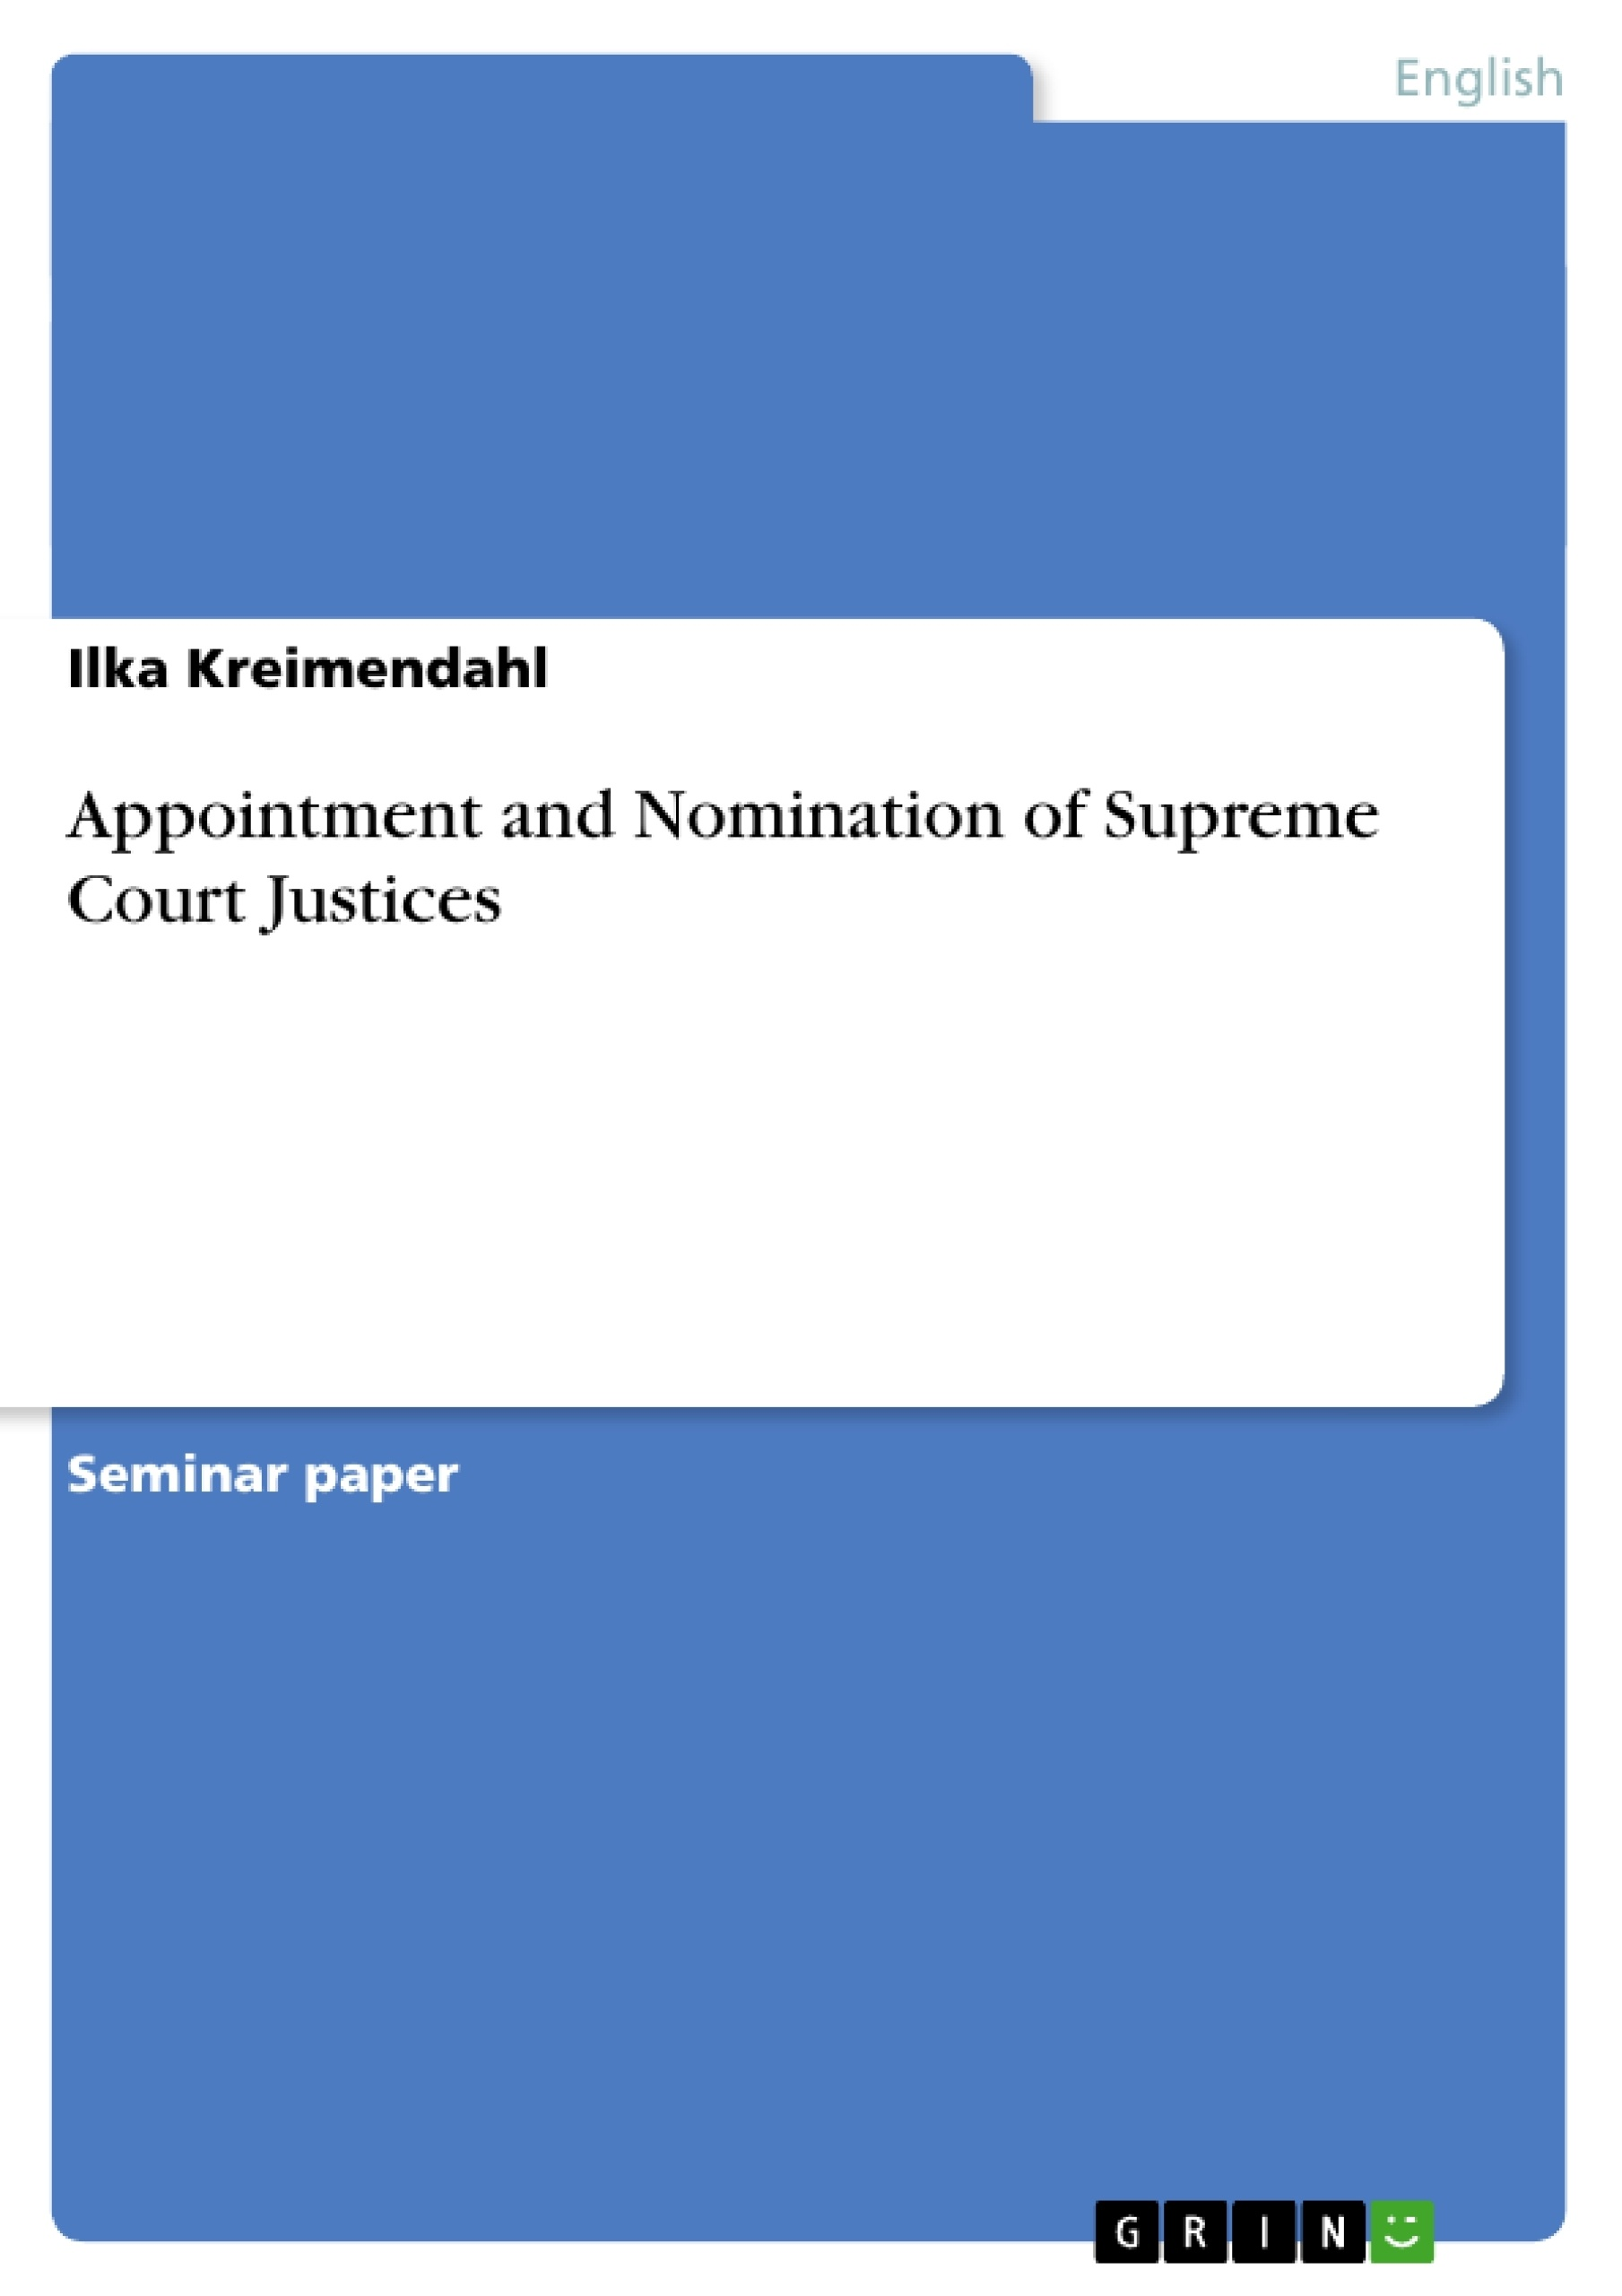 supreme court justices essay If kavanaugh is fit to be a supreme court justice then the conversation should be focused on the judgment exhibited throughout his career as a lawyer and a judge, not his carpool etiquette.